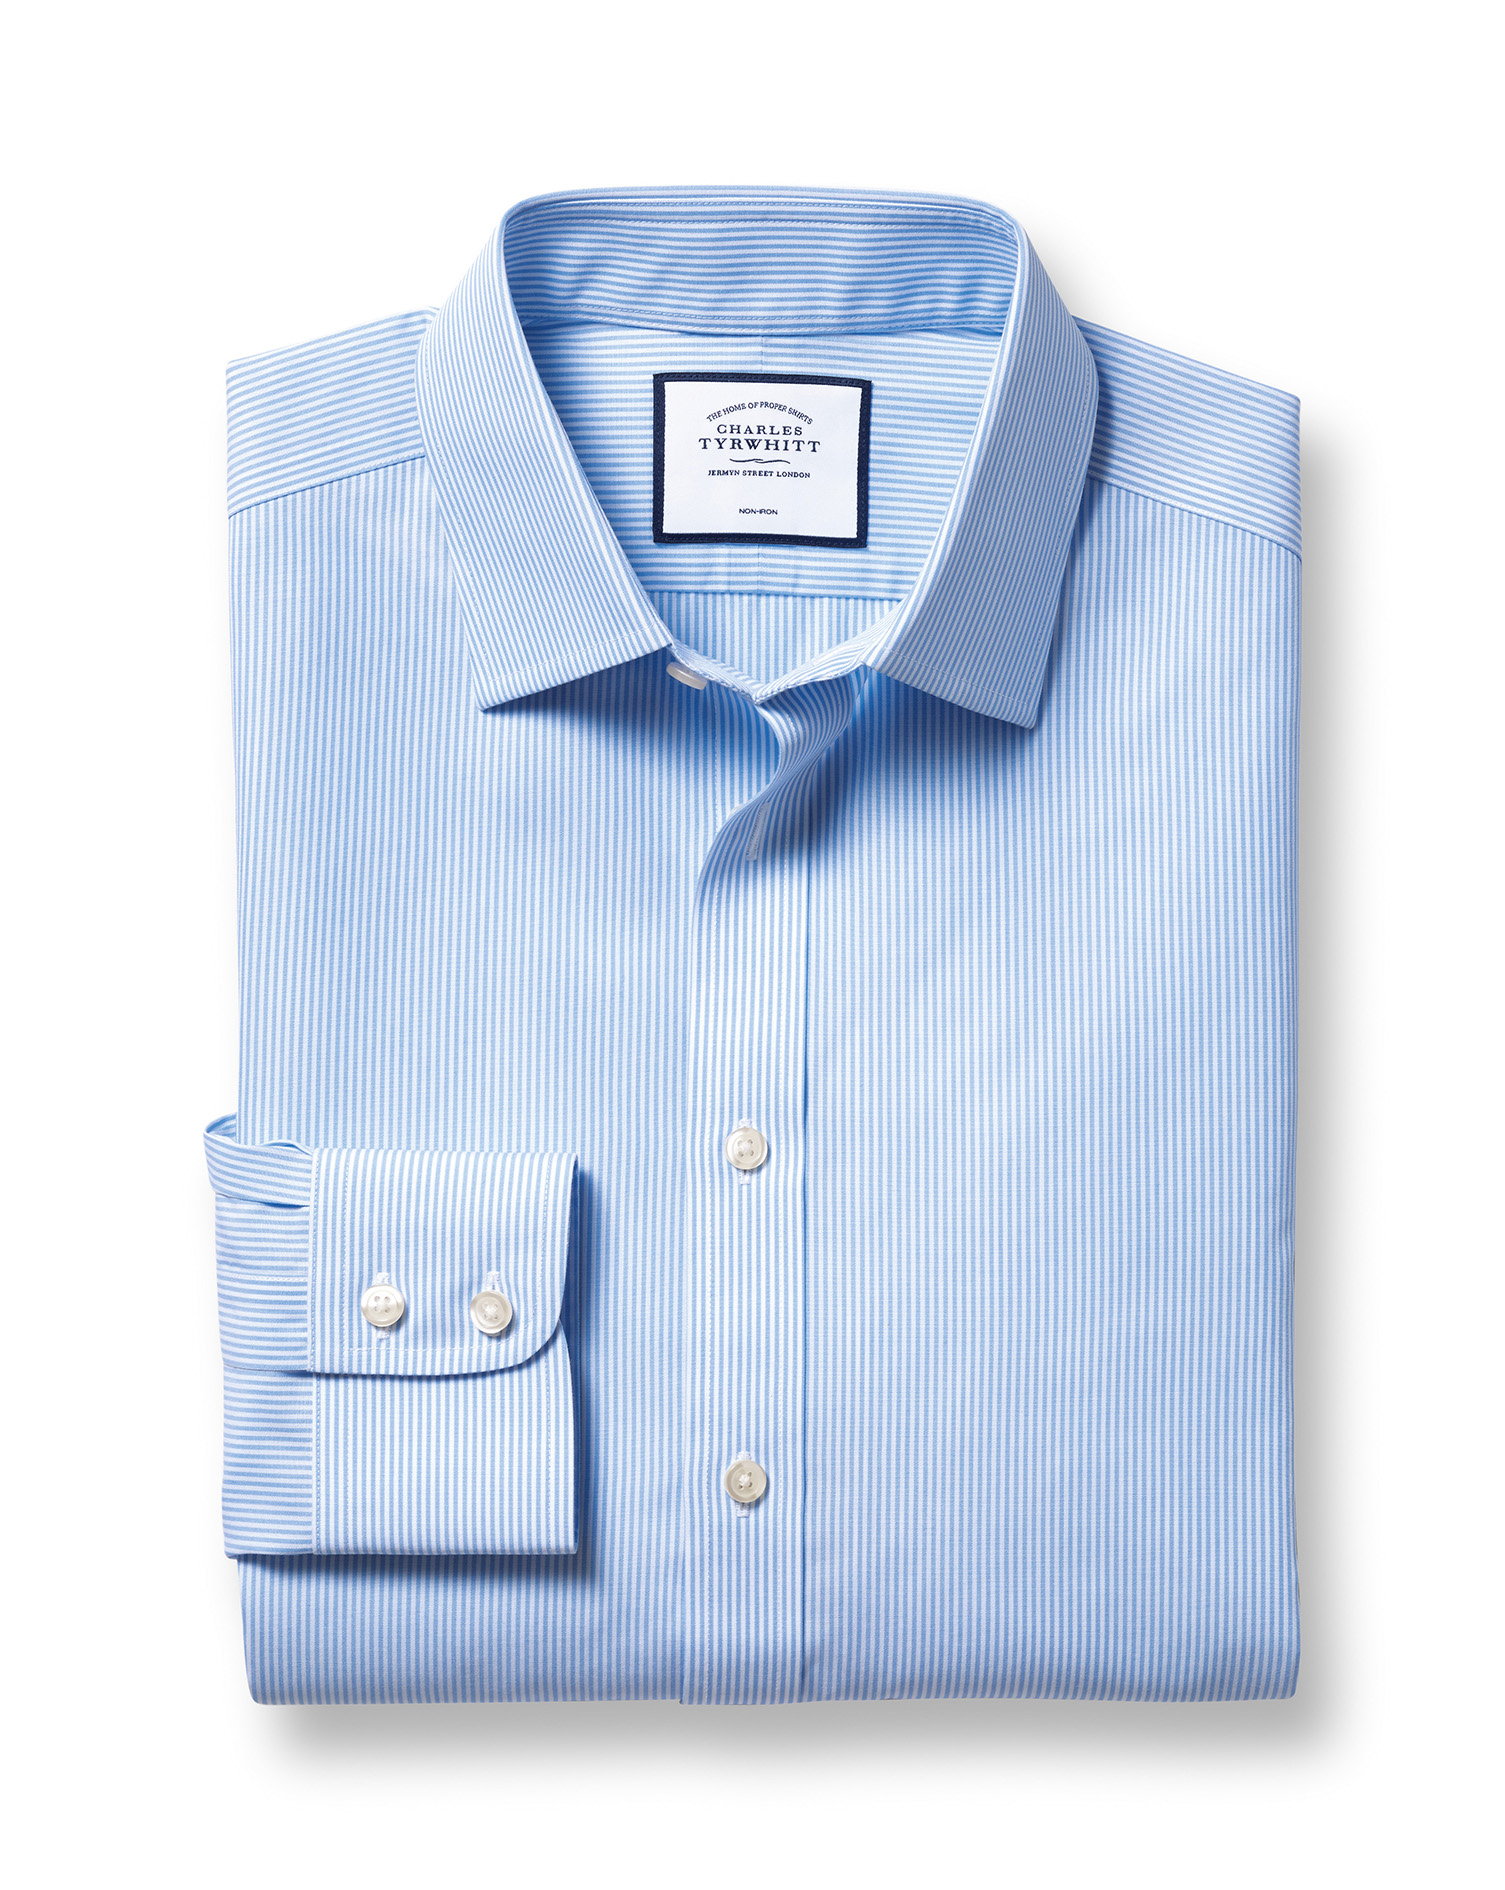 Slim Fit Non-Iron Bengal Stripe Sky Blue Cotton Formal Shirt by Charles Tyrwhitt